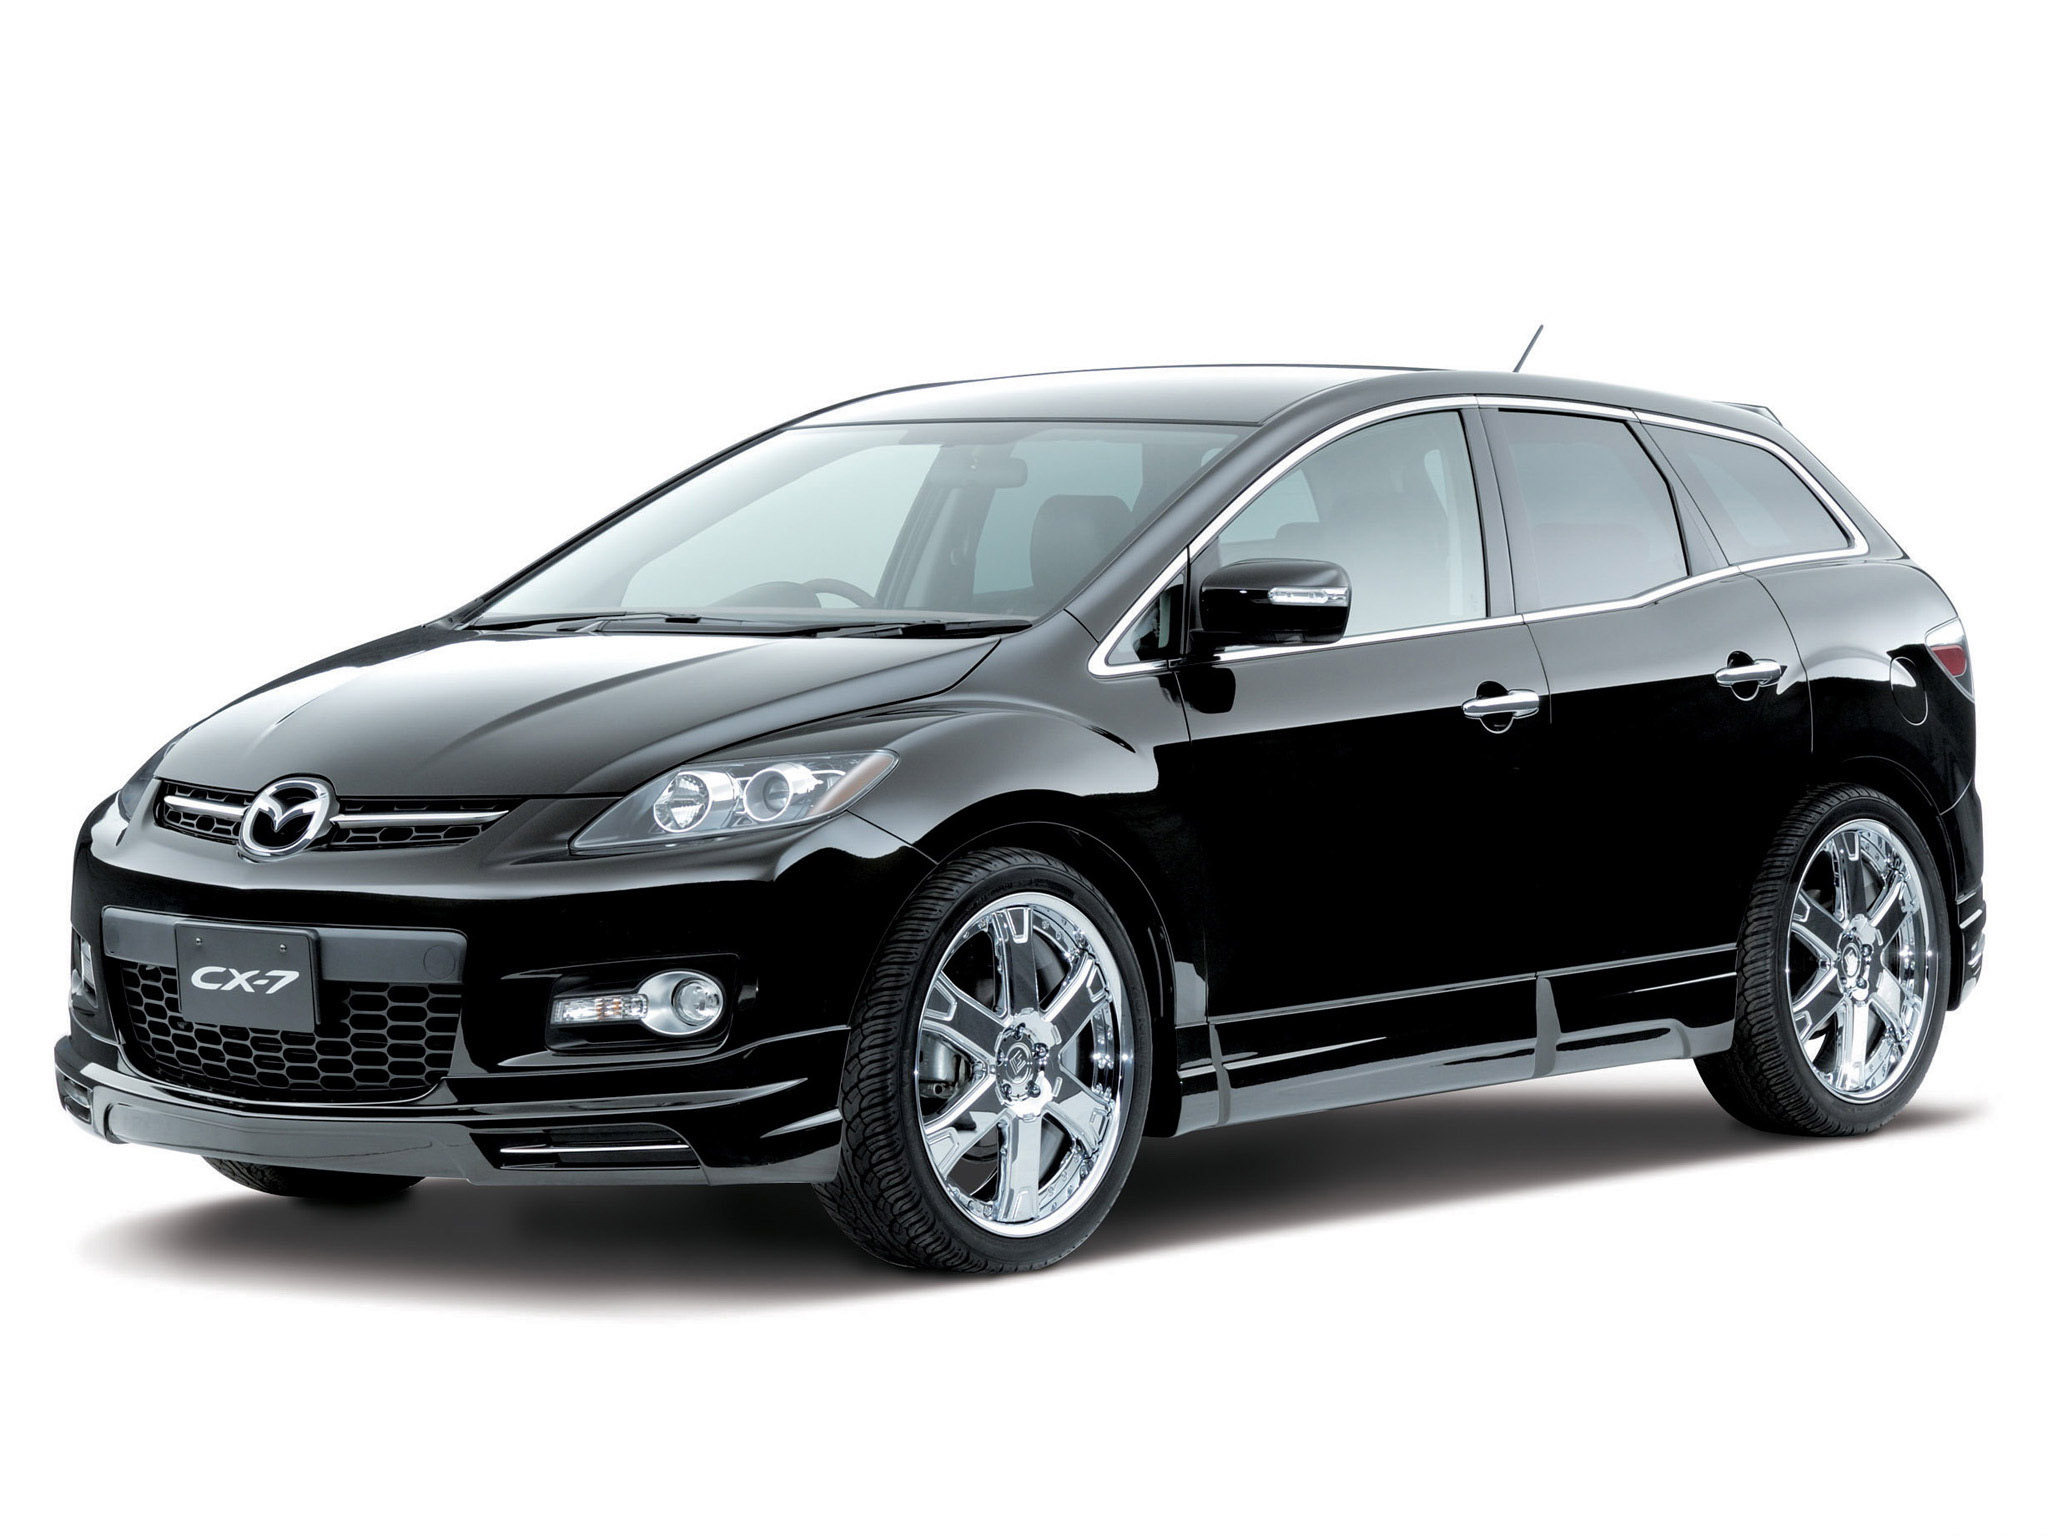 mazda cx 7 cool style concept 2007 mazda cx 7 cool style concept 2007 photo 04 car in pictures. Black Bedroom Furniture Sets. Home Design Ideas